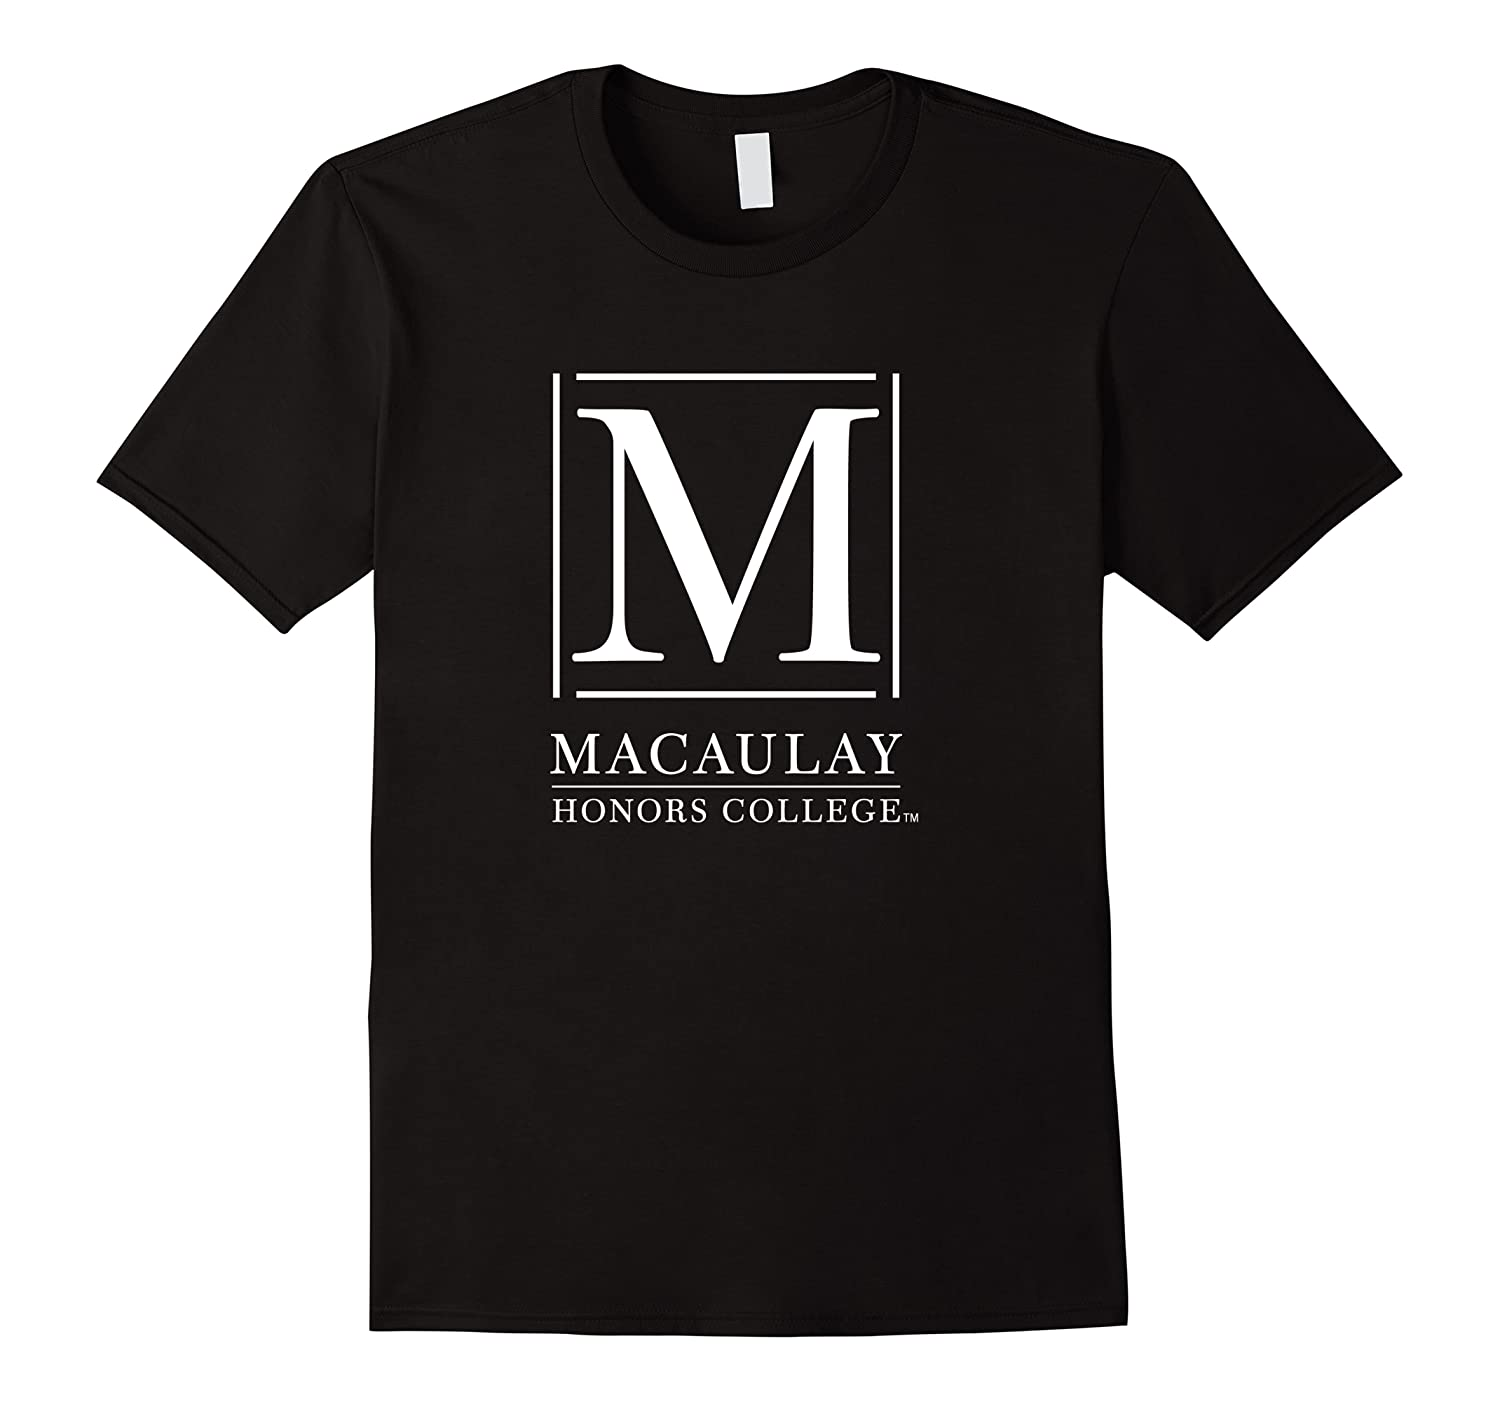 Macaulay Honors College Mountain Lions Ppmhc02 Shirts Men Short Sleeve